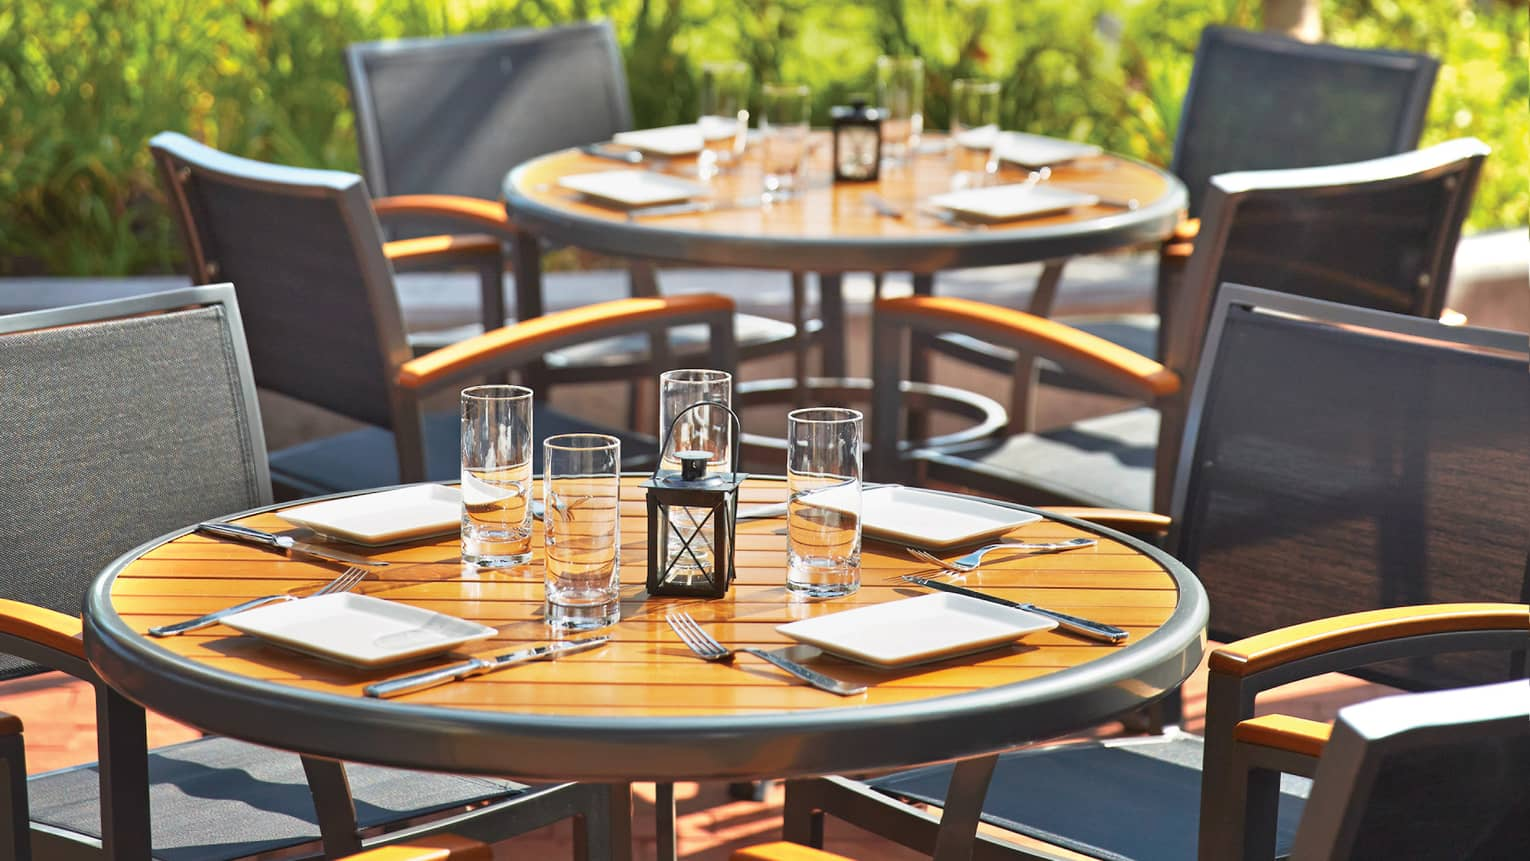 Round patio tables set with plates, glasses, lanterns on sunny day